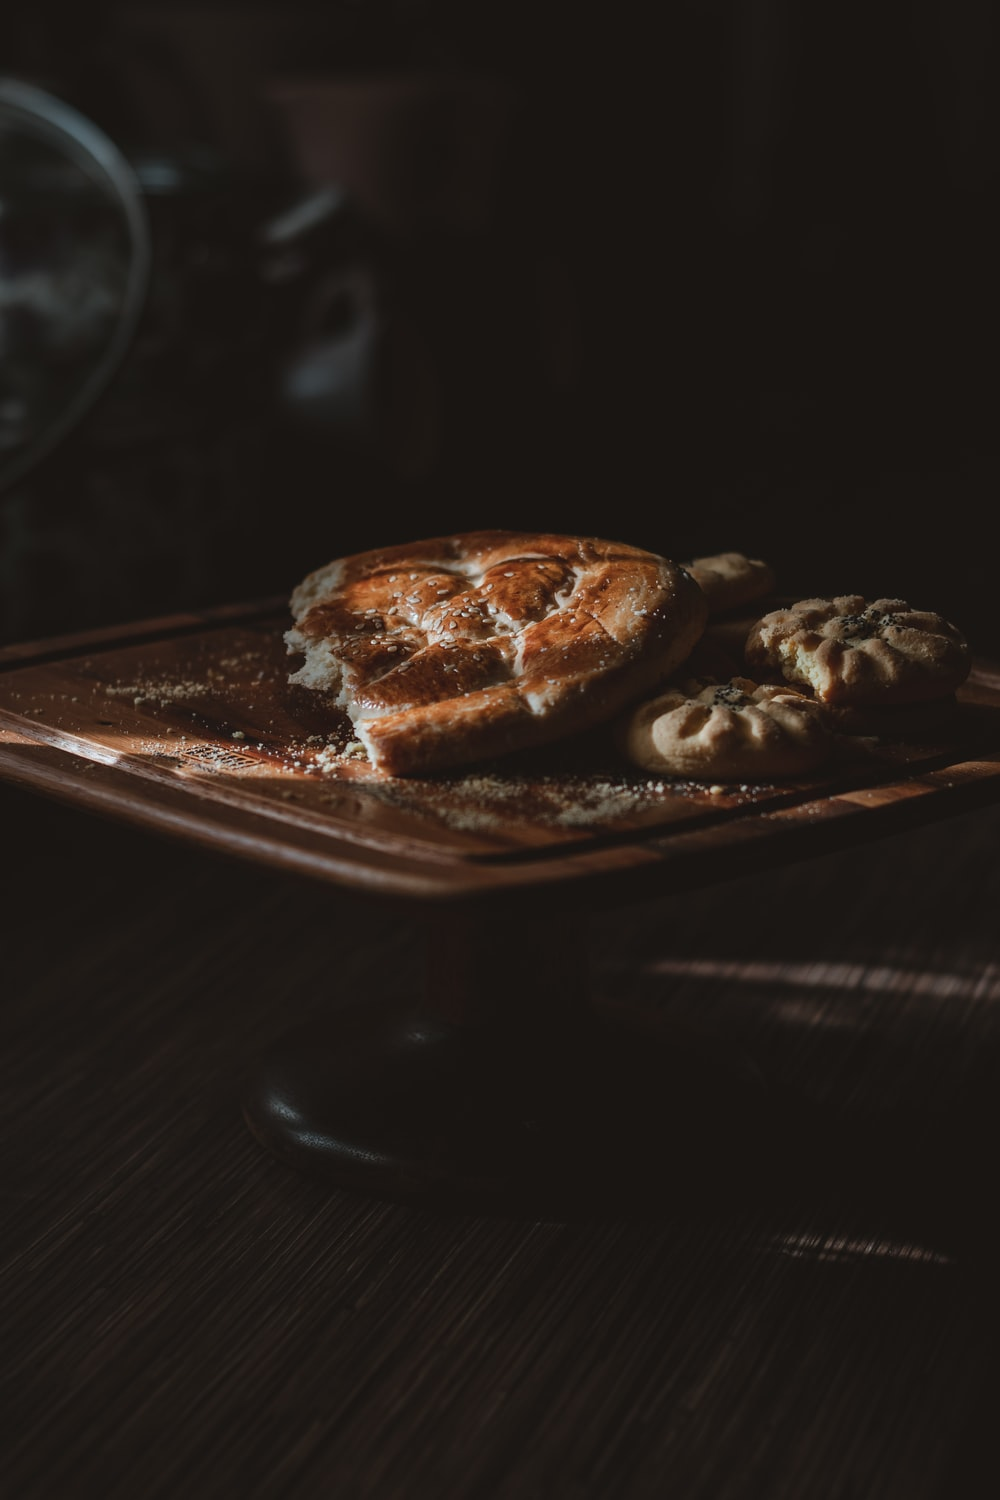 brown pastry on silver tray